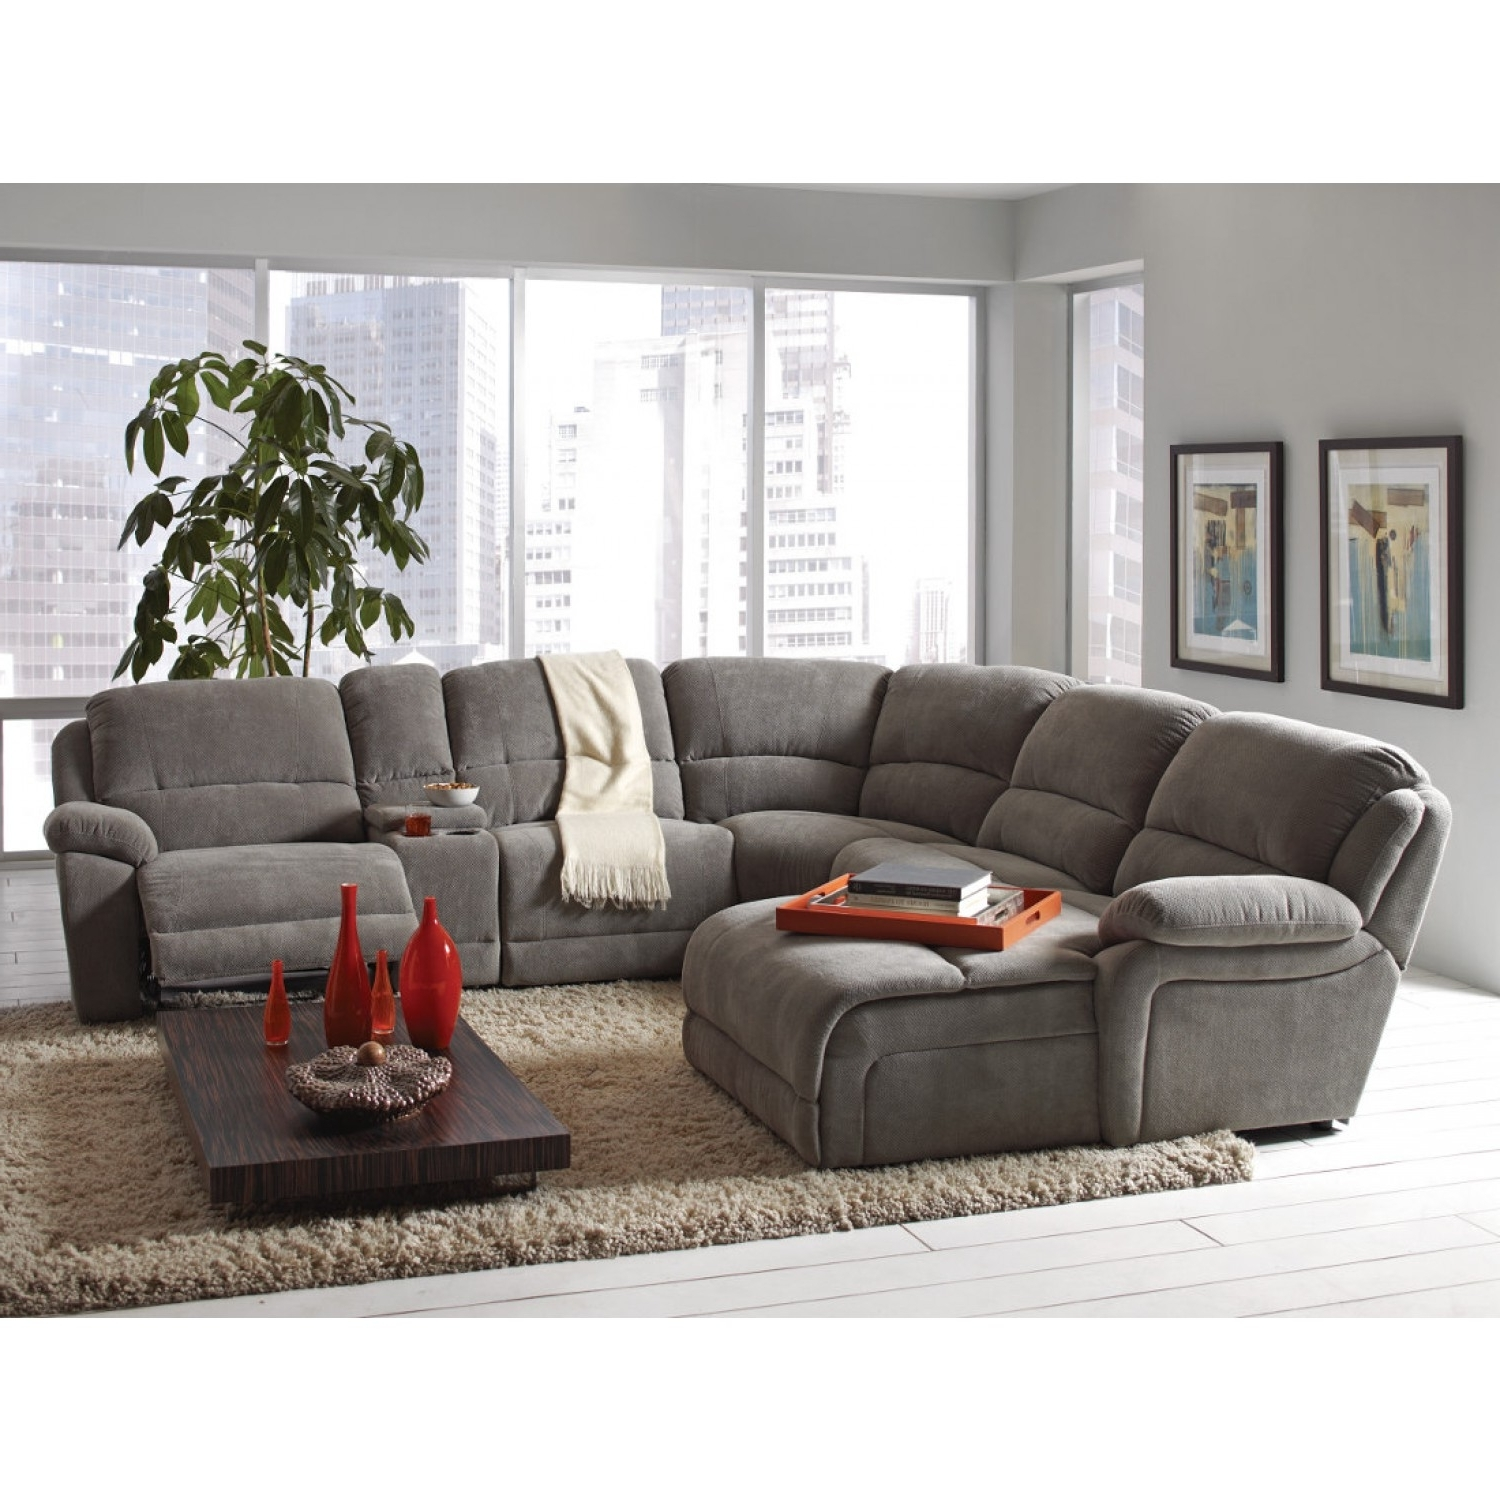 2017 Coaster Mackenzie Silver 6 Piece Reclining Sectional Sofa With Inside Sectional Sofas That Come In Pieces (View 1 of 15)